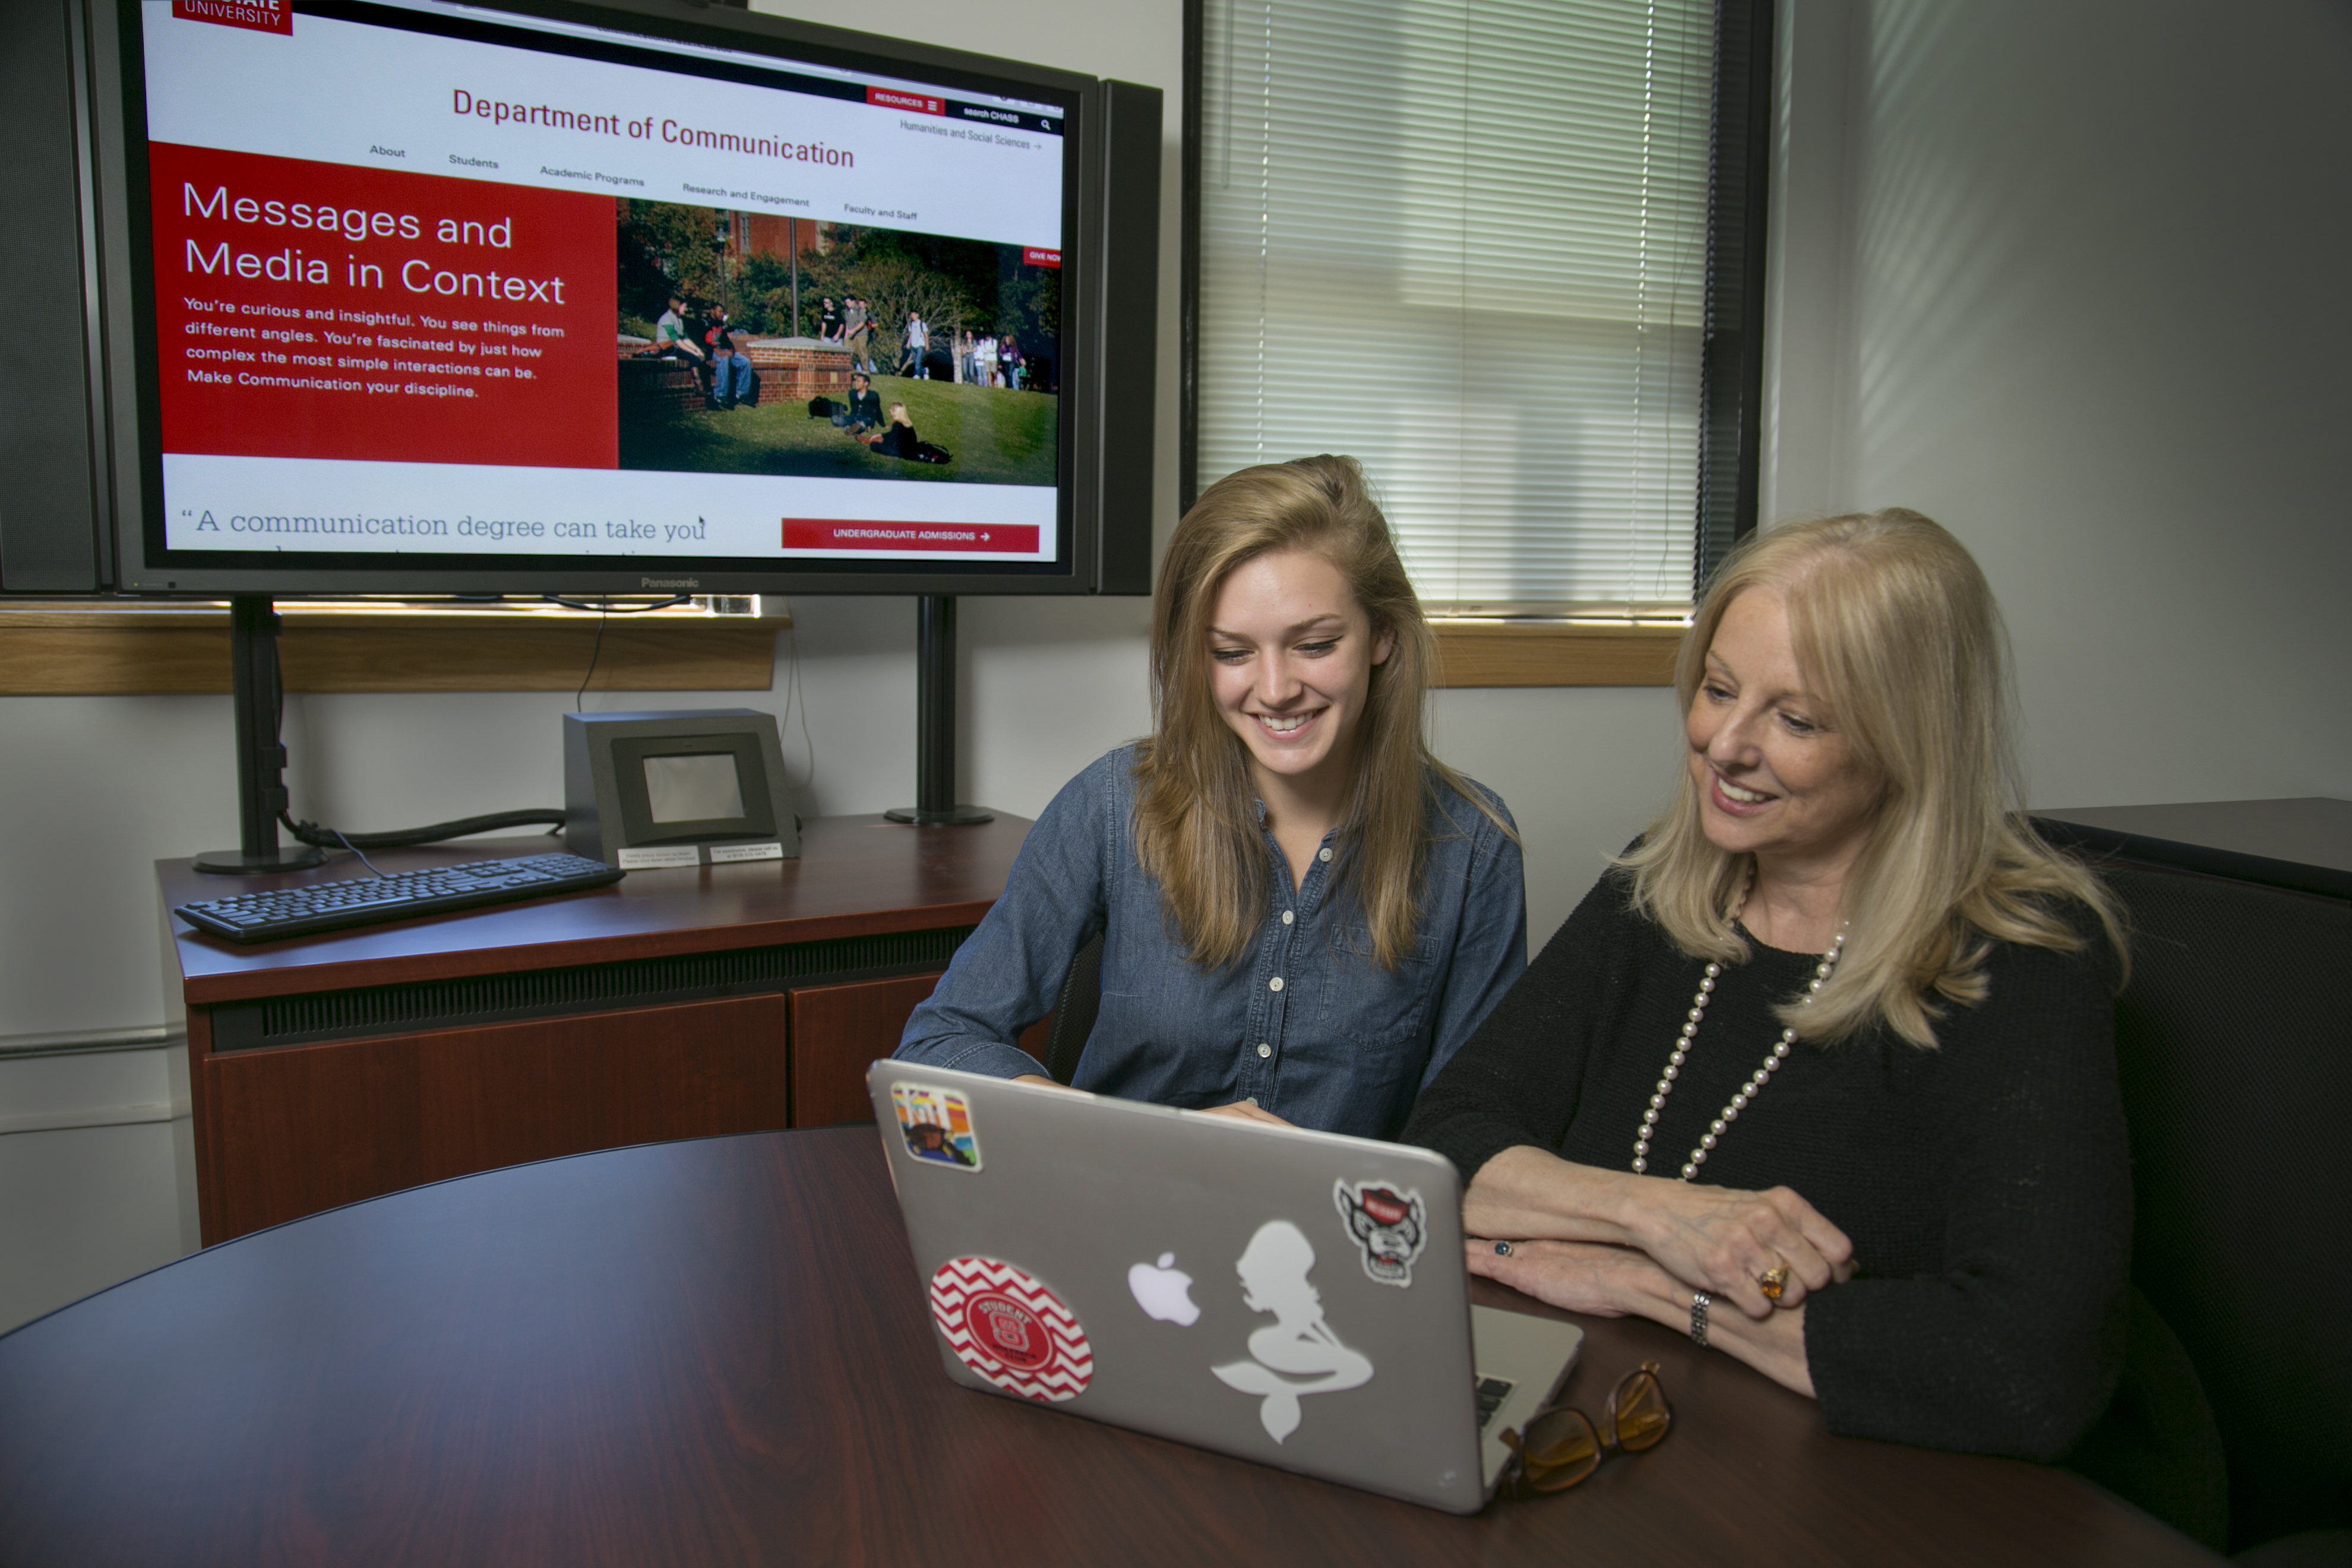 Joan Alford, right, demonstrates the capabilities of the new site to junior COM major Caitlyn Dixon